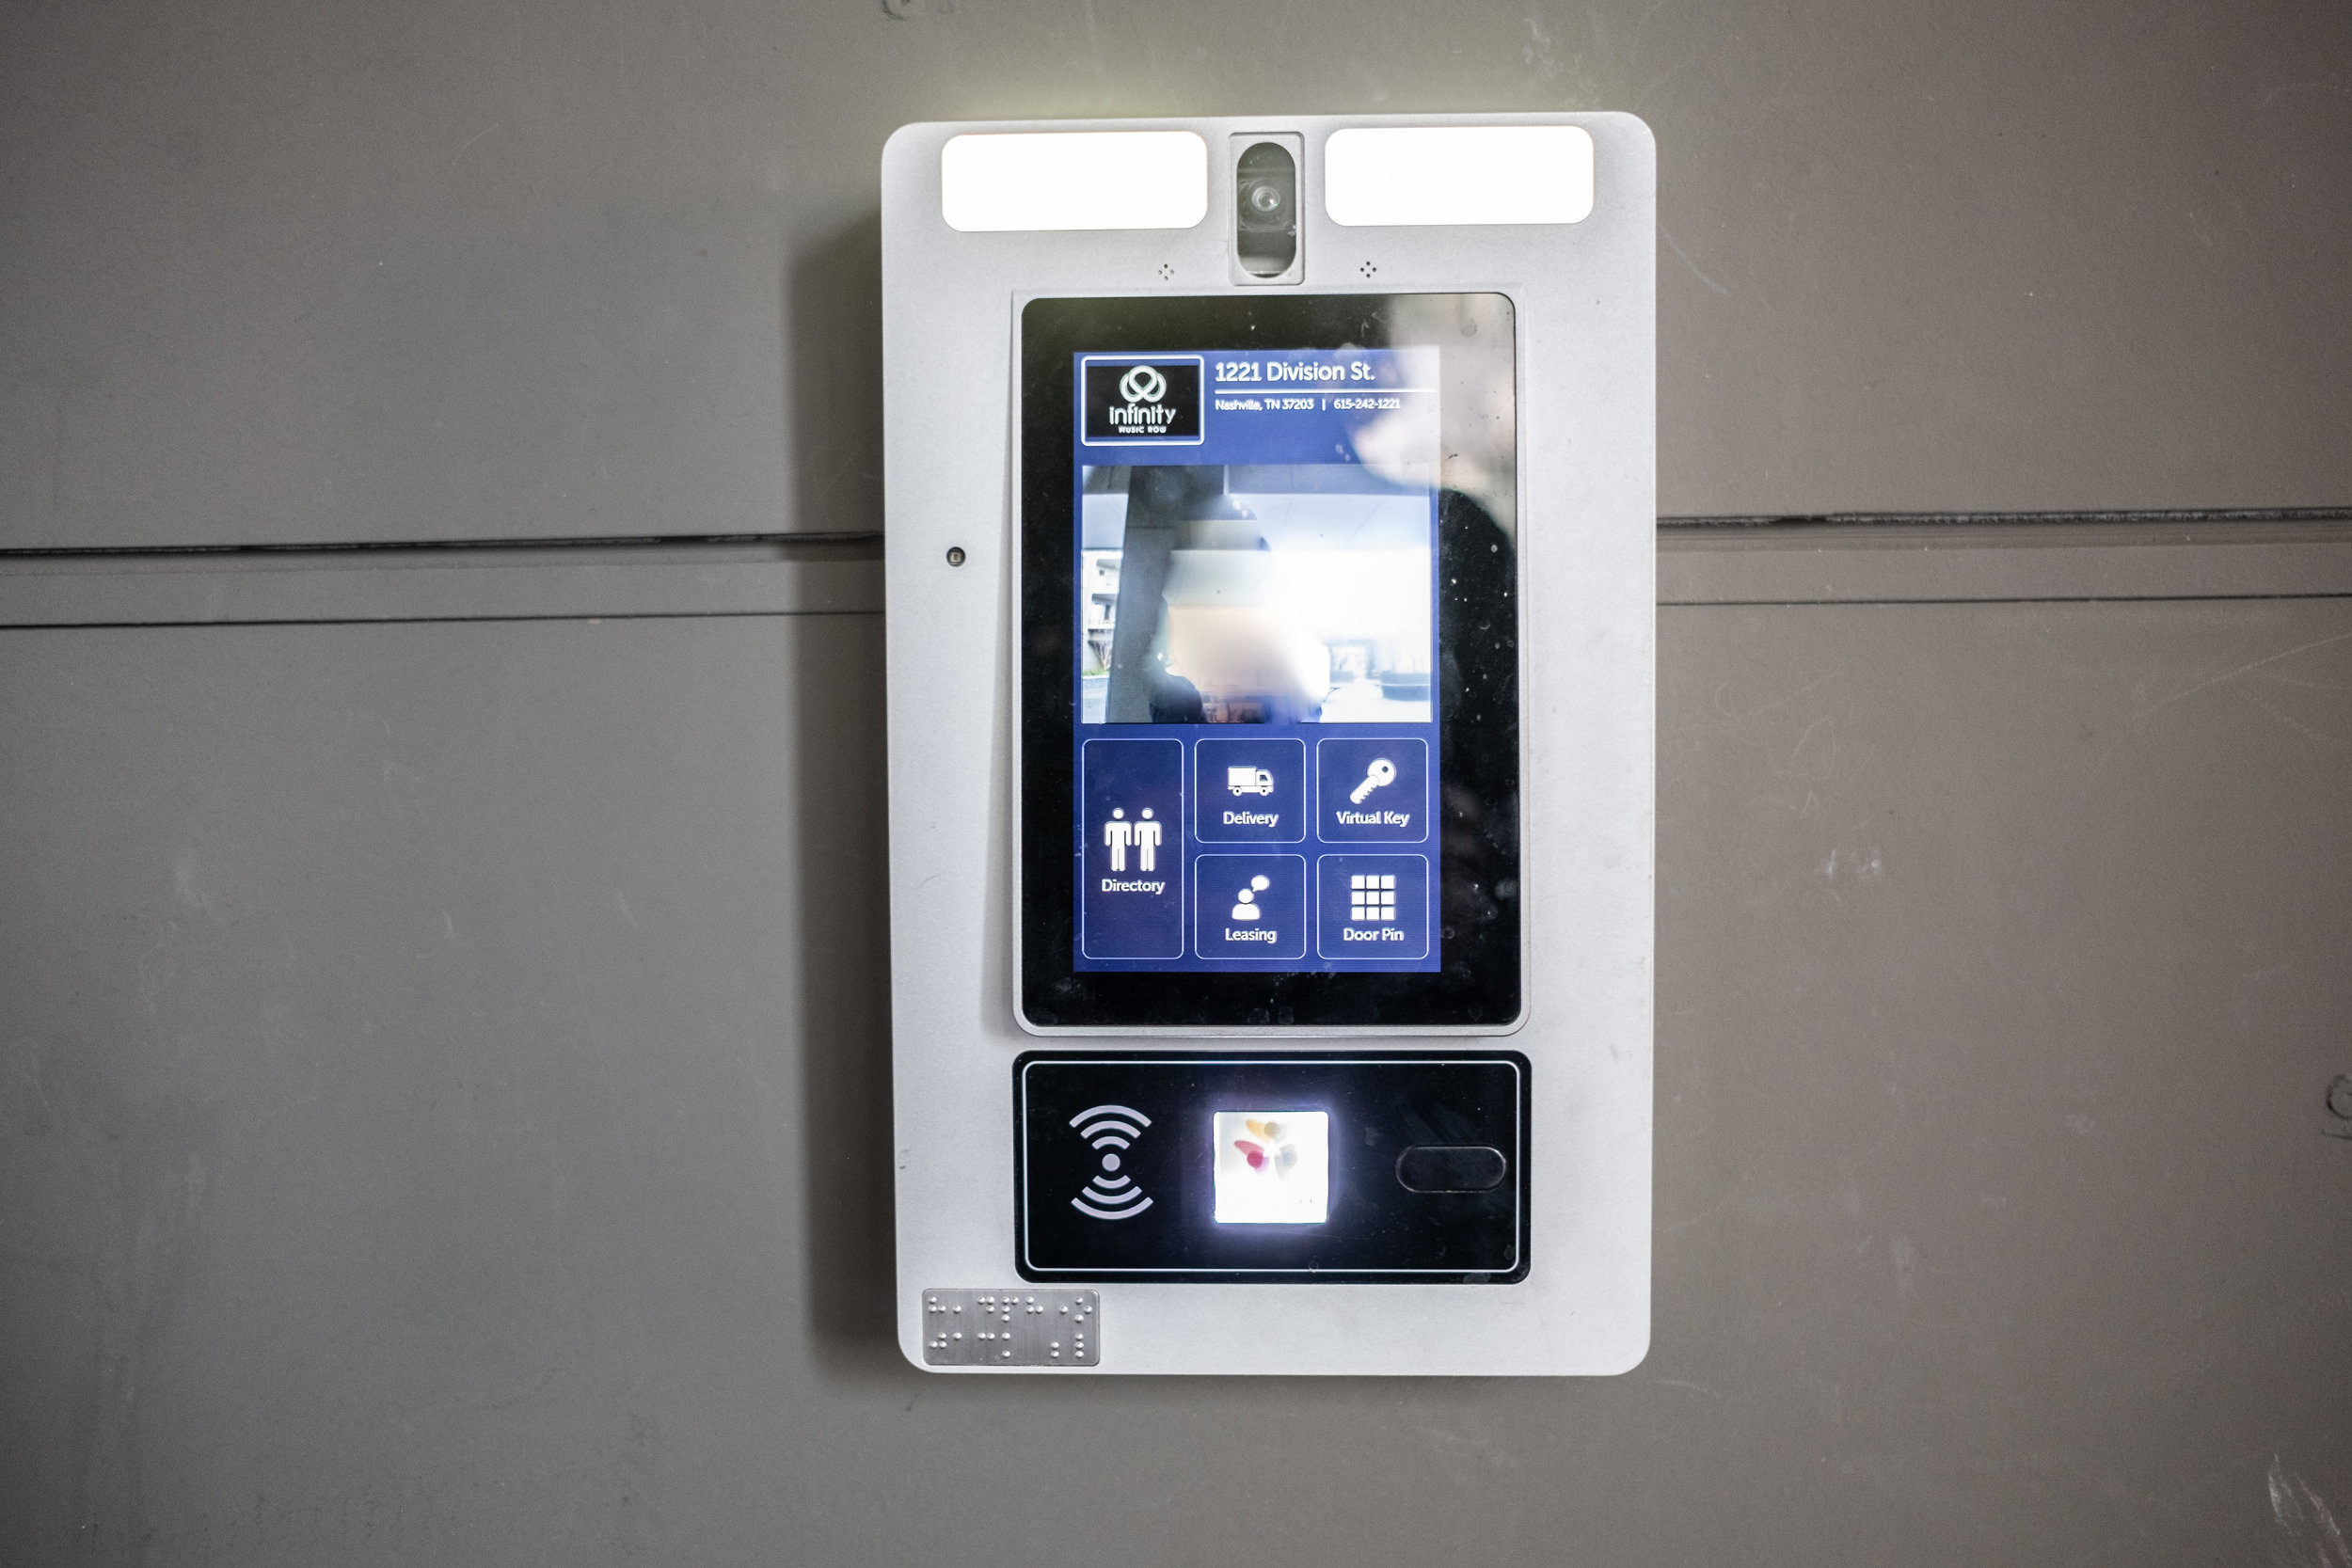 Touchscreen to enter building entrance.